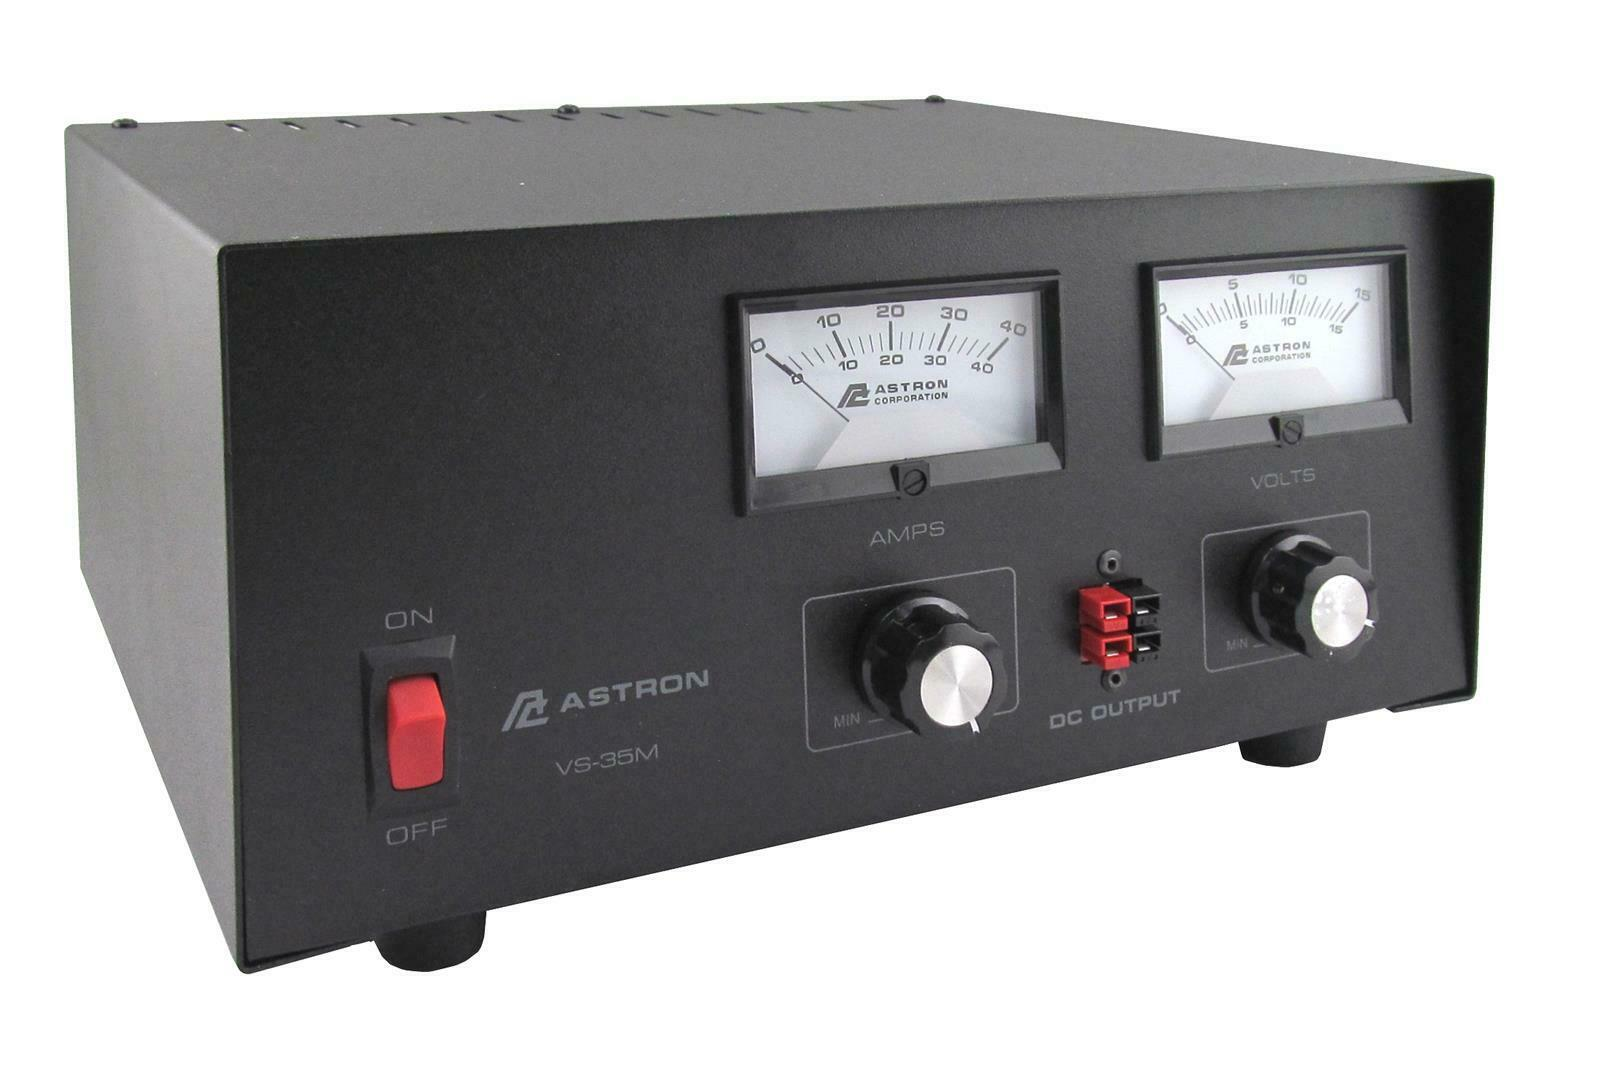 Astron VS-35M-AP 35 Amp Adjustable DC Power Supply w/Meters. Available Now for 275.00